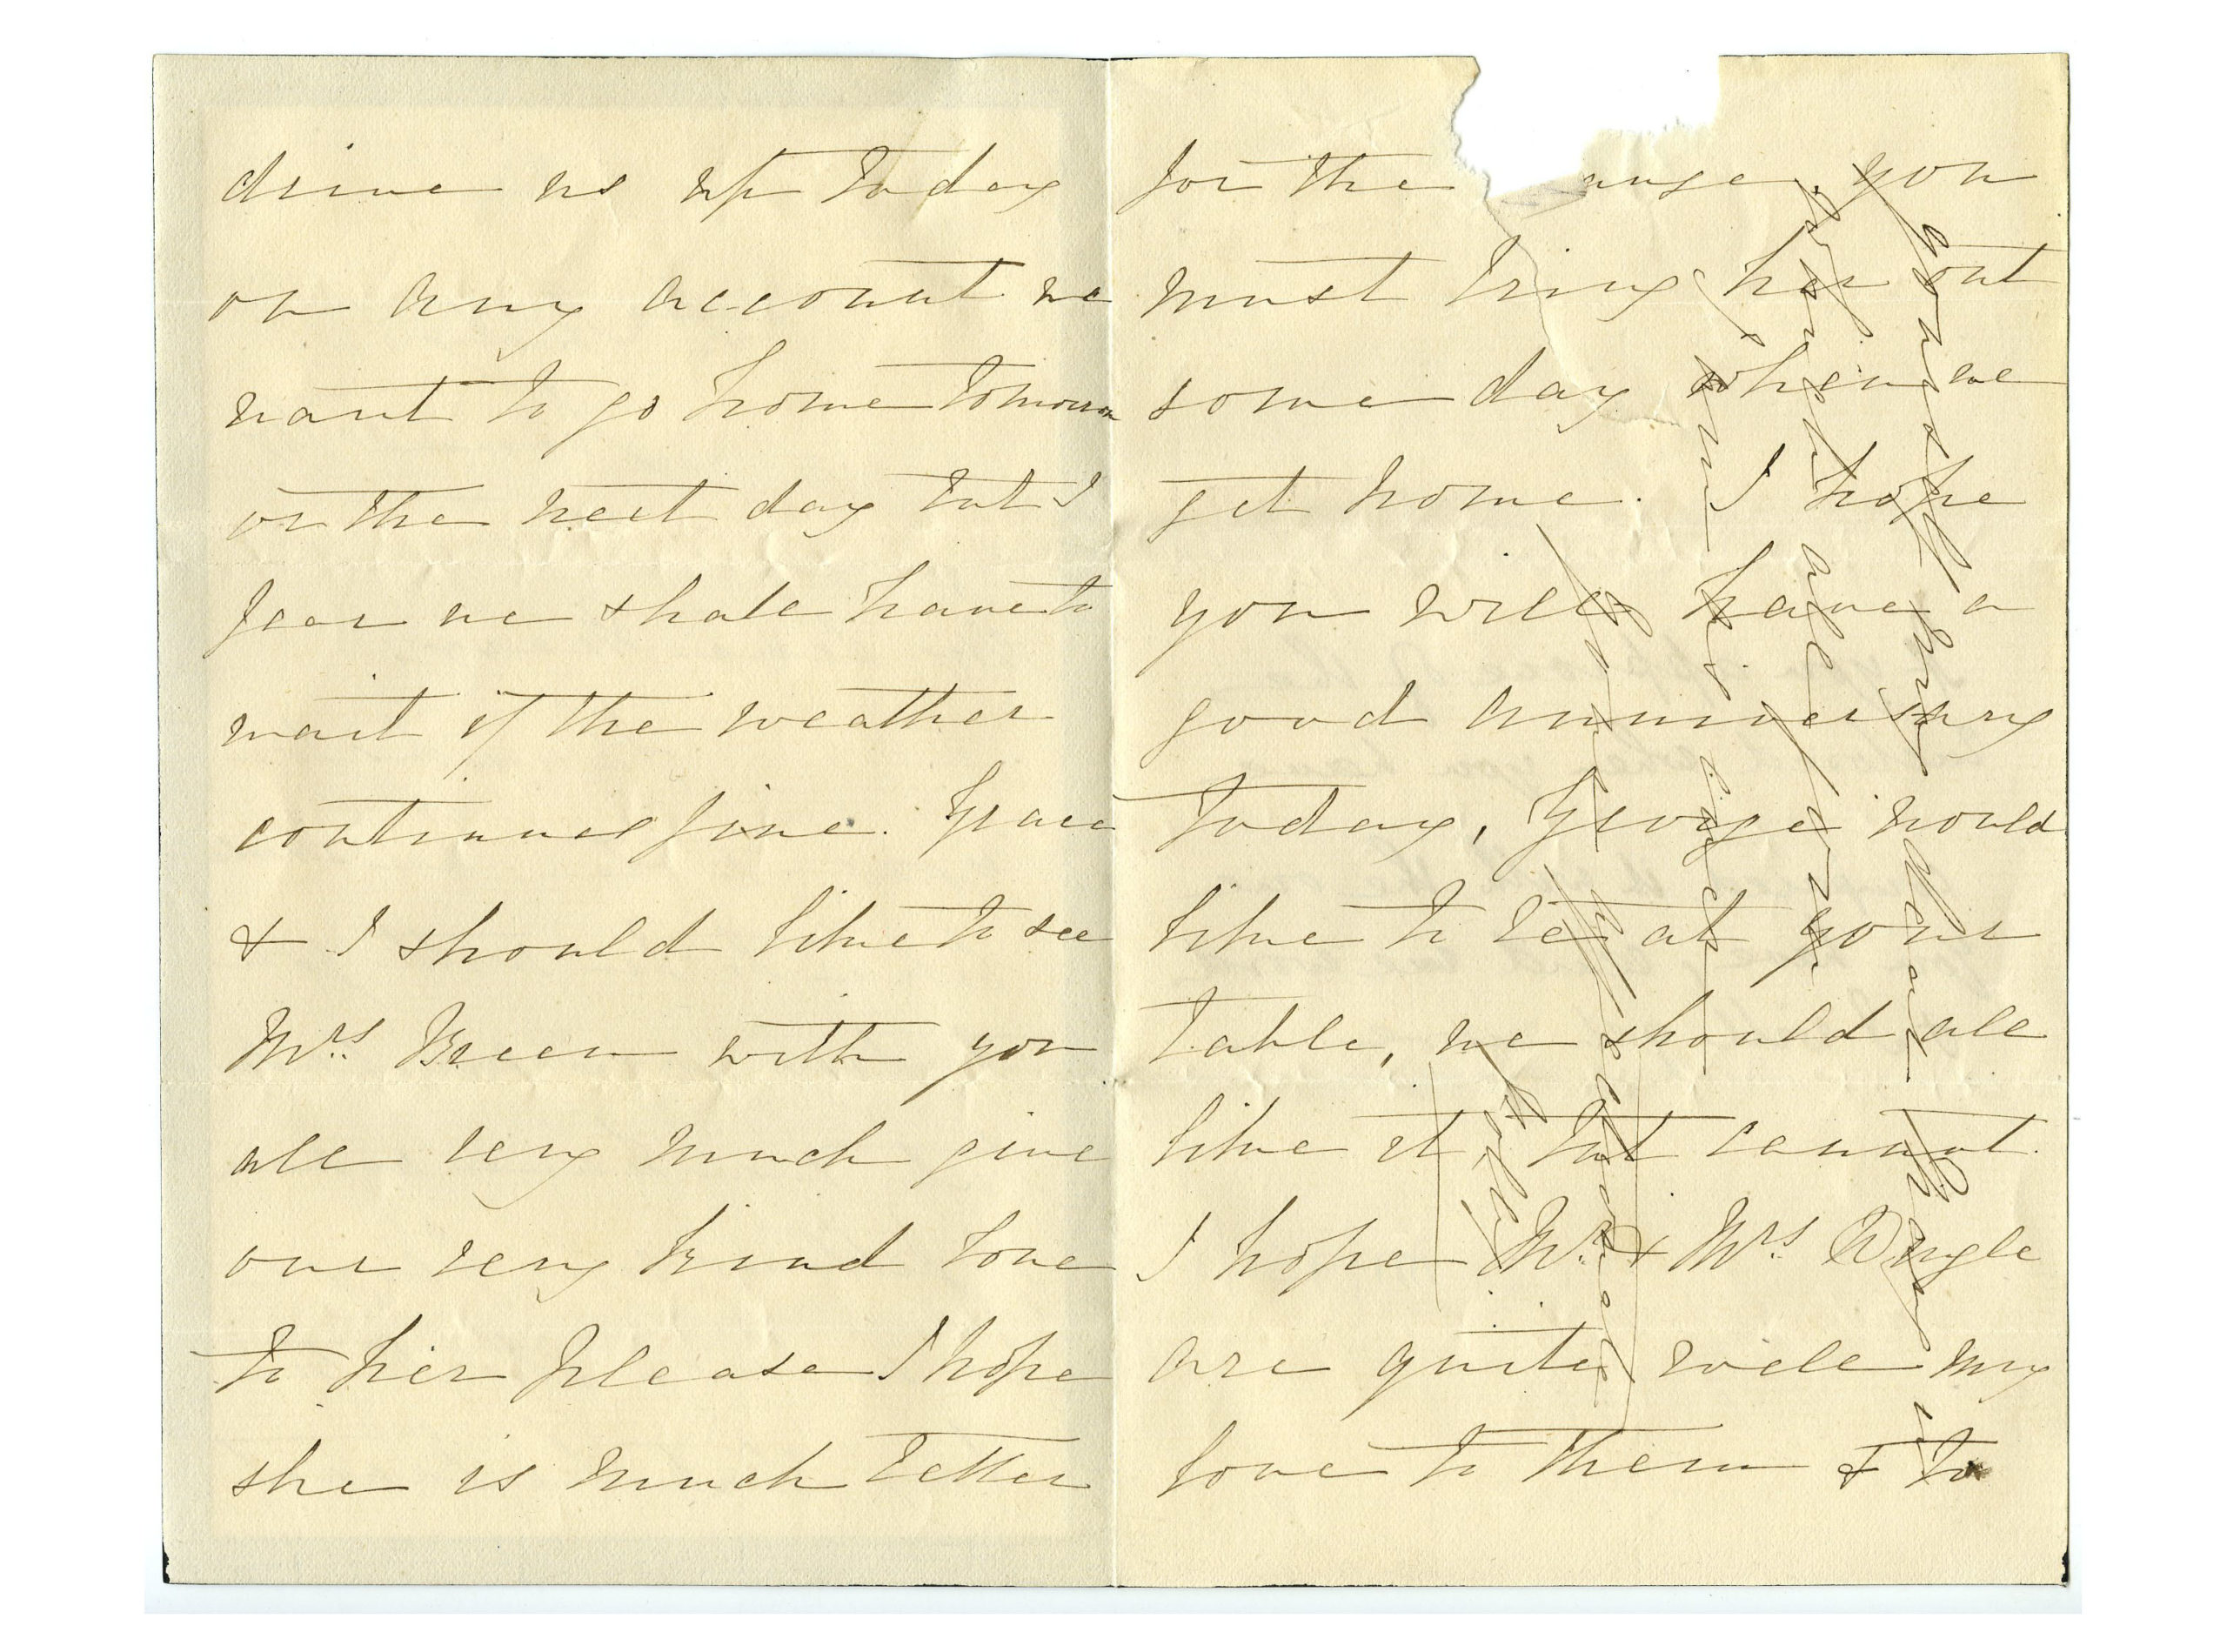 Old letter regarding the Adams family